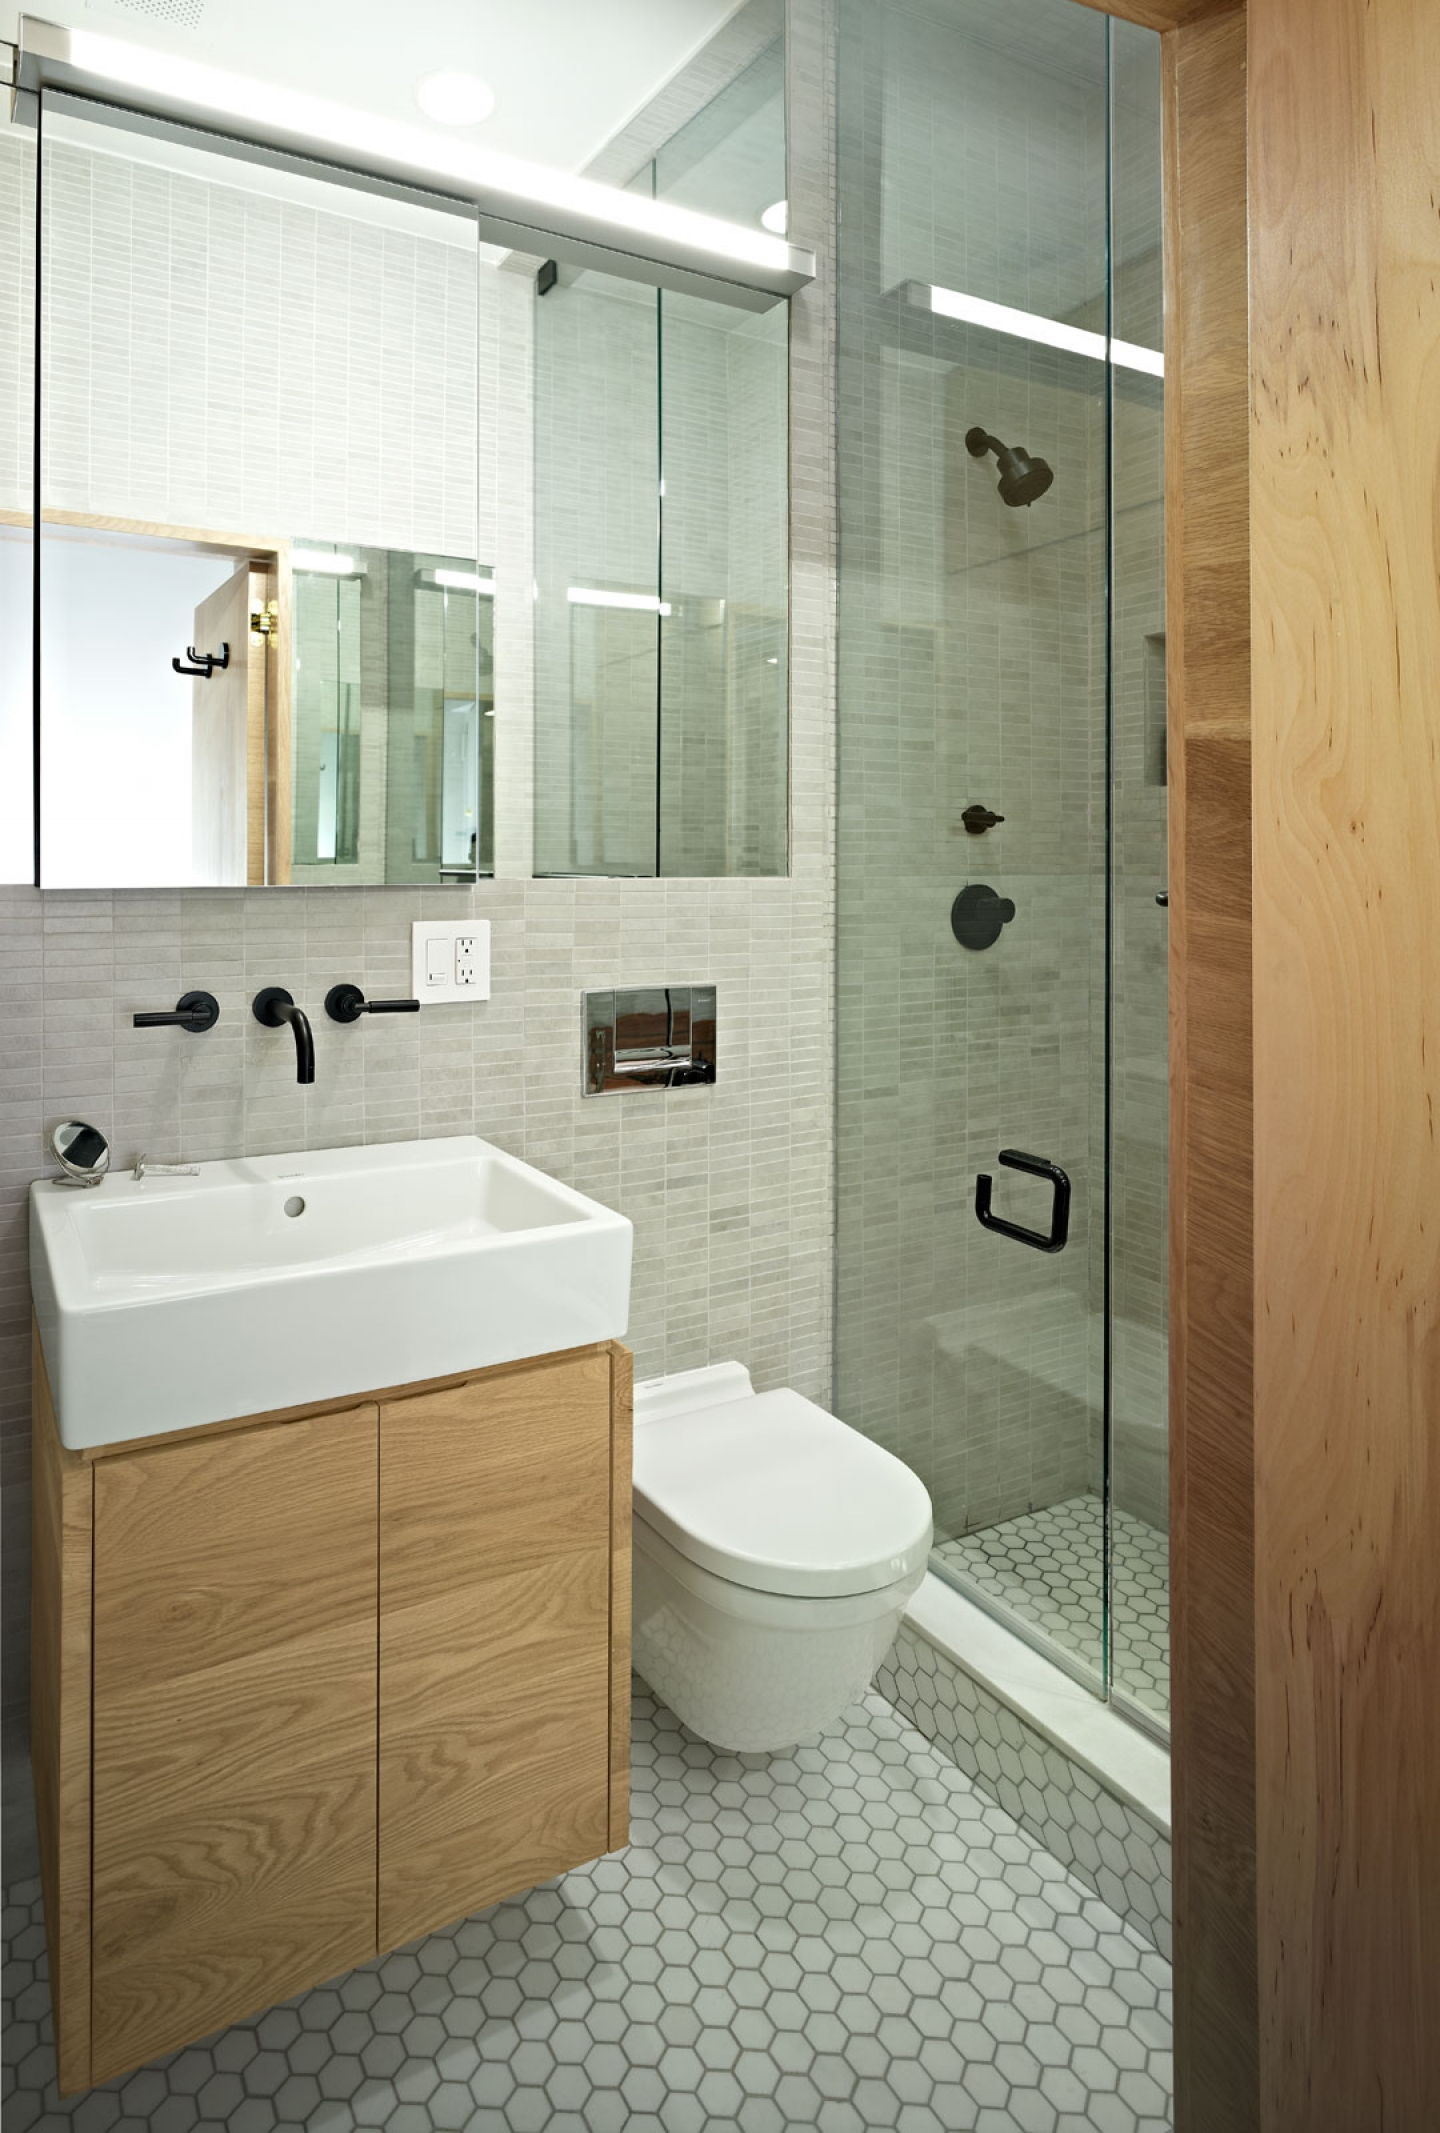 Wooden Cabinet For Small Bathroom Ideas